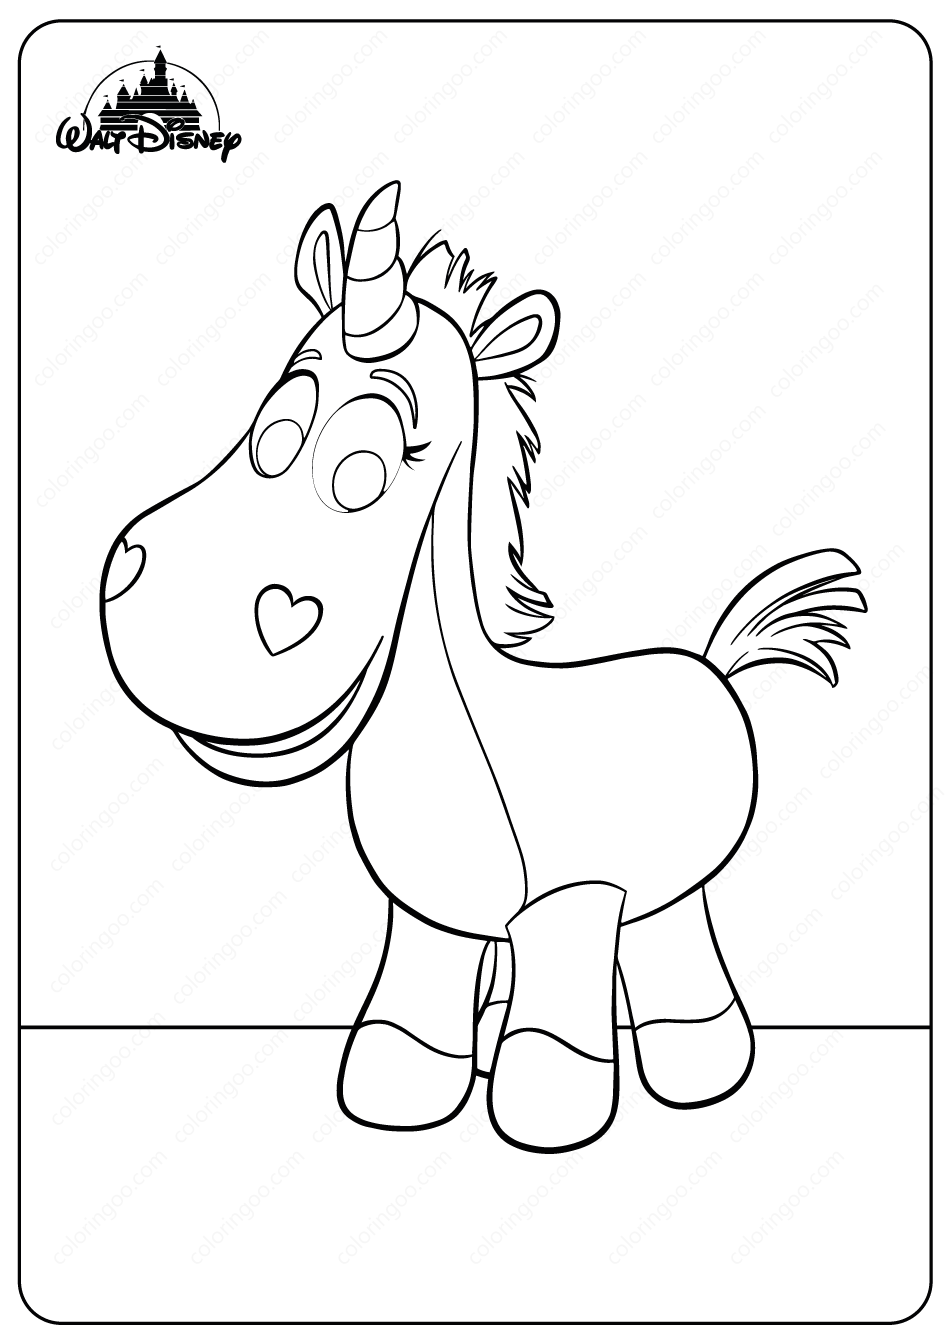 Buttercup Coloring Pages Coloring Pages Disney Unicorn Printables